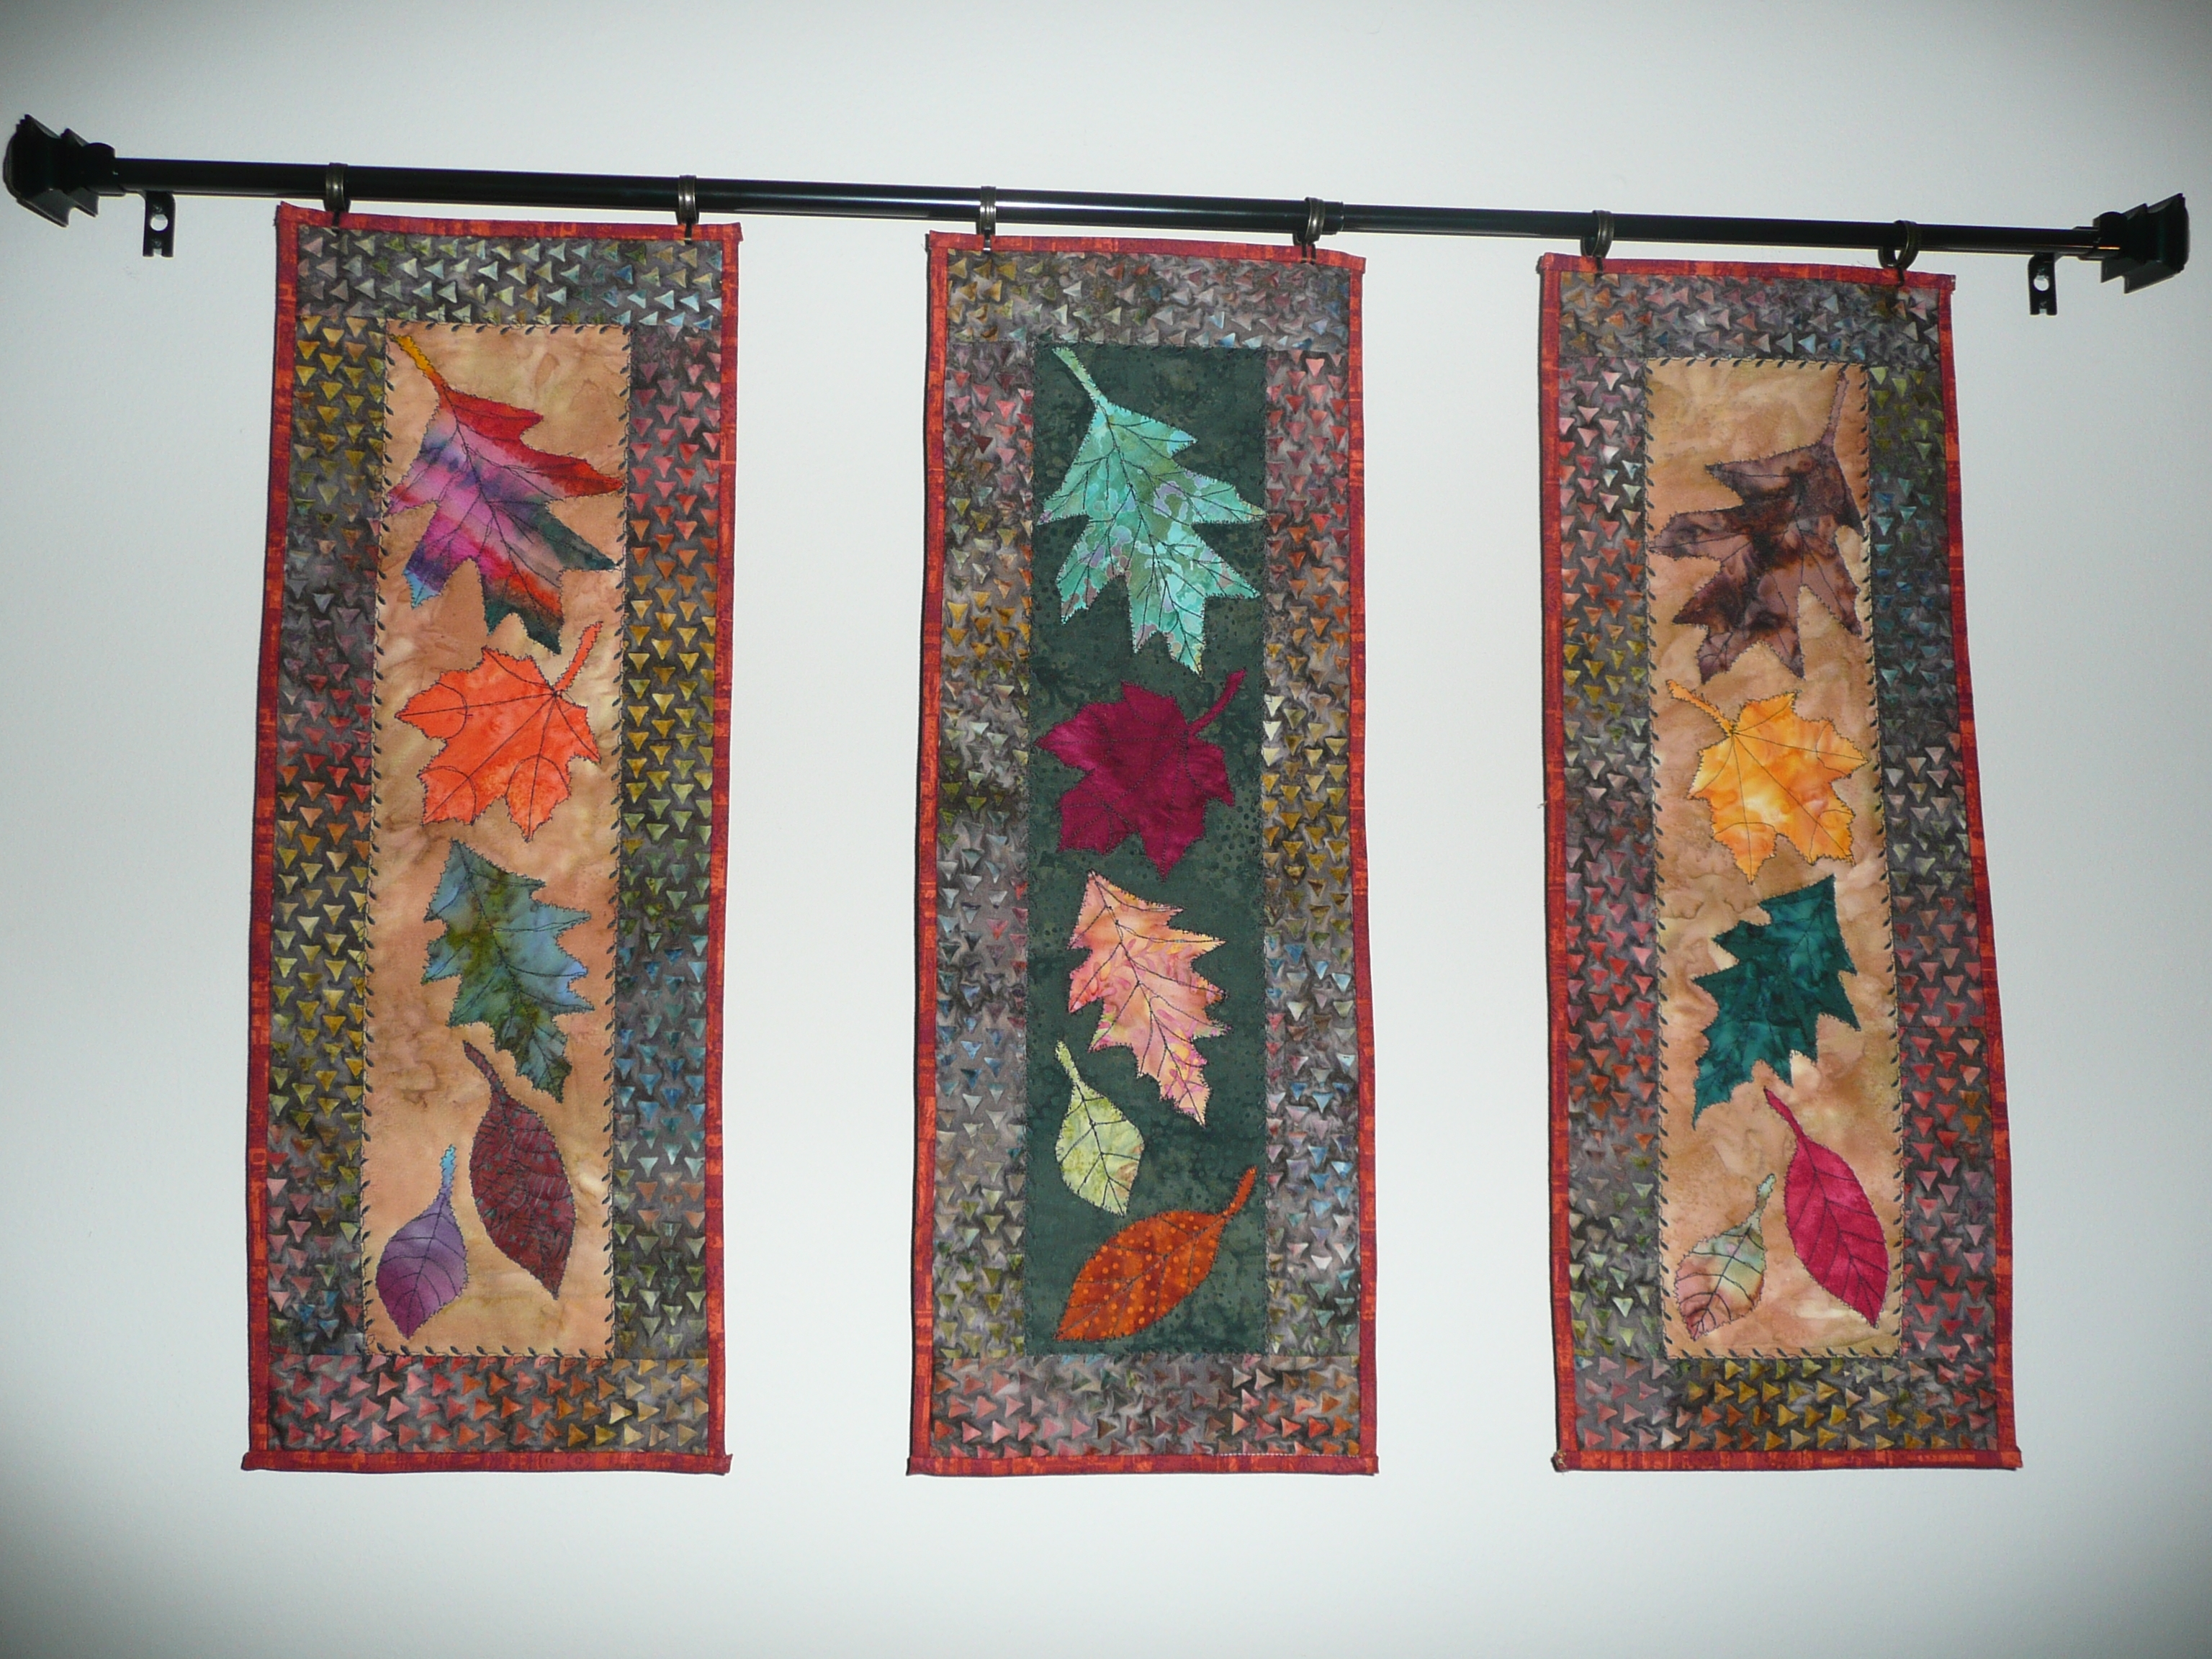 Not Just Your Typical Bed Quilt | Lorna's Voice Regarding Most Recently Released Batik Fabric Wall Art (View 13 of 15)